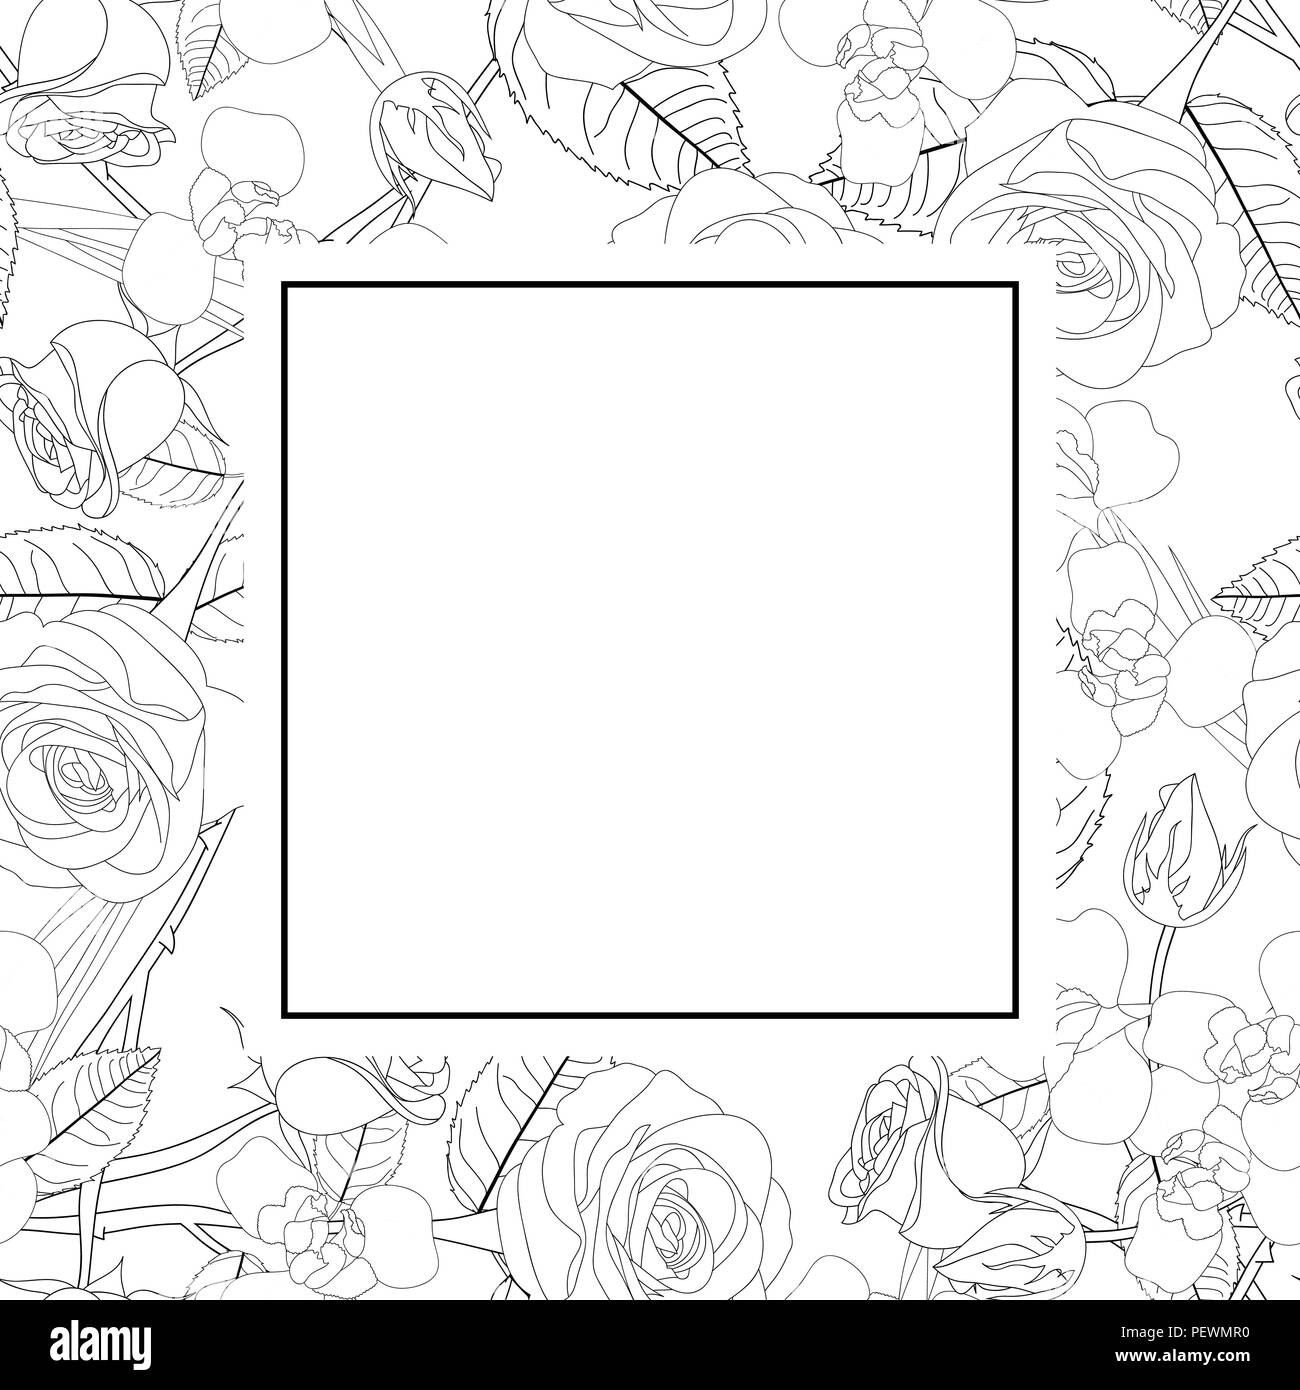 Black Vector Outline Rose Flower Black And White Stock Photos